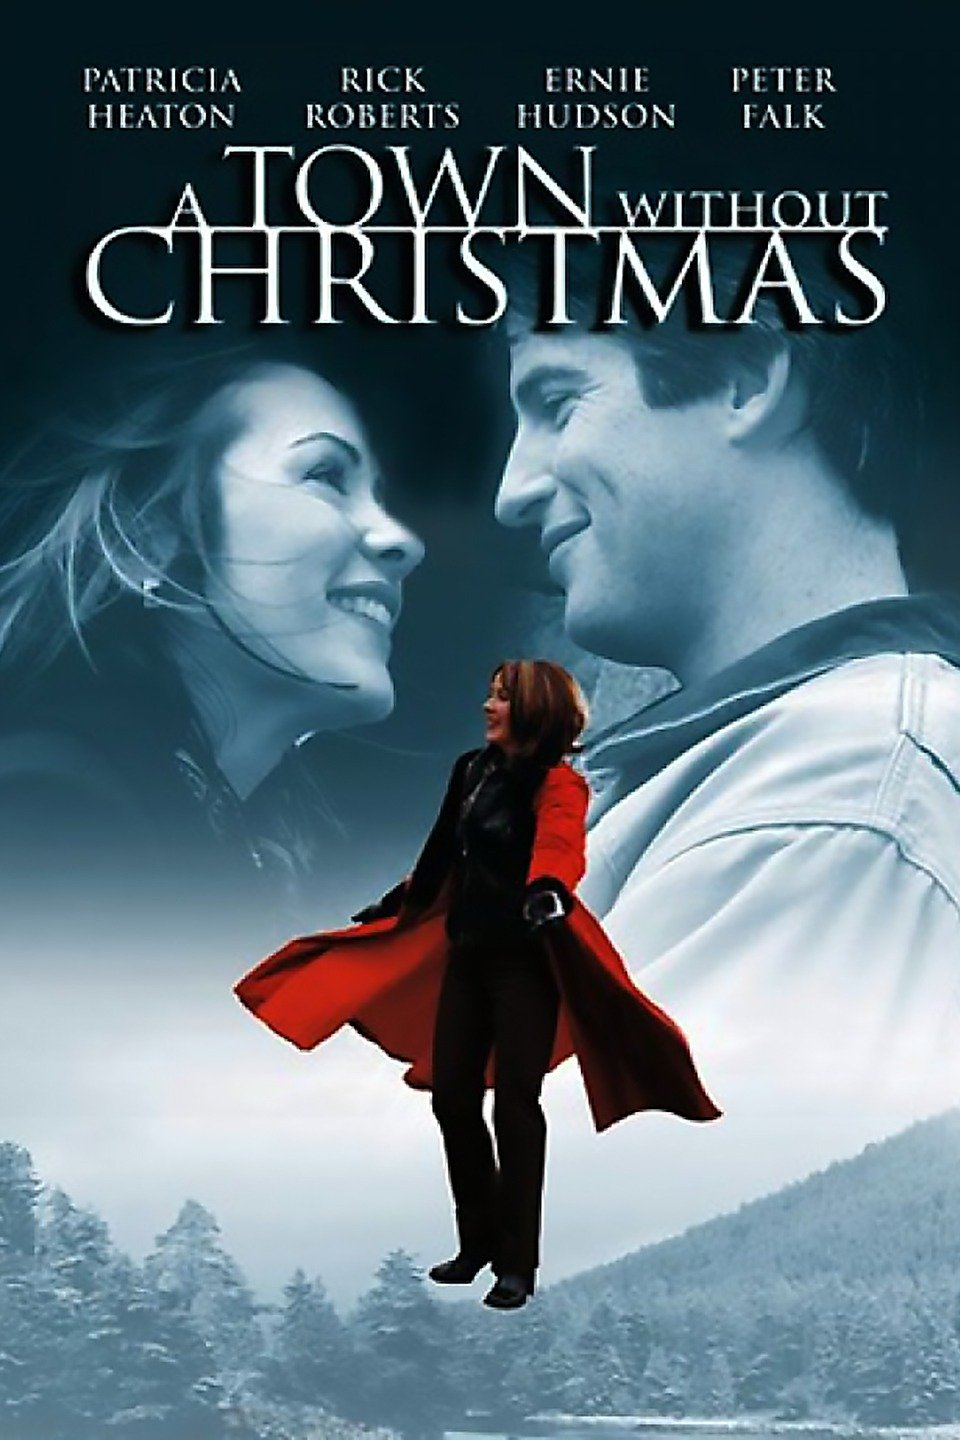 A Town Without Christmas (2001)